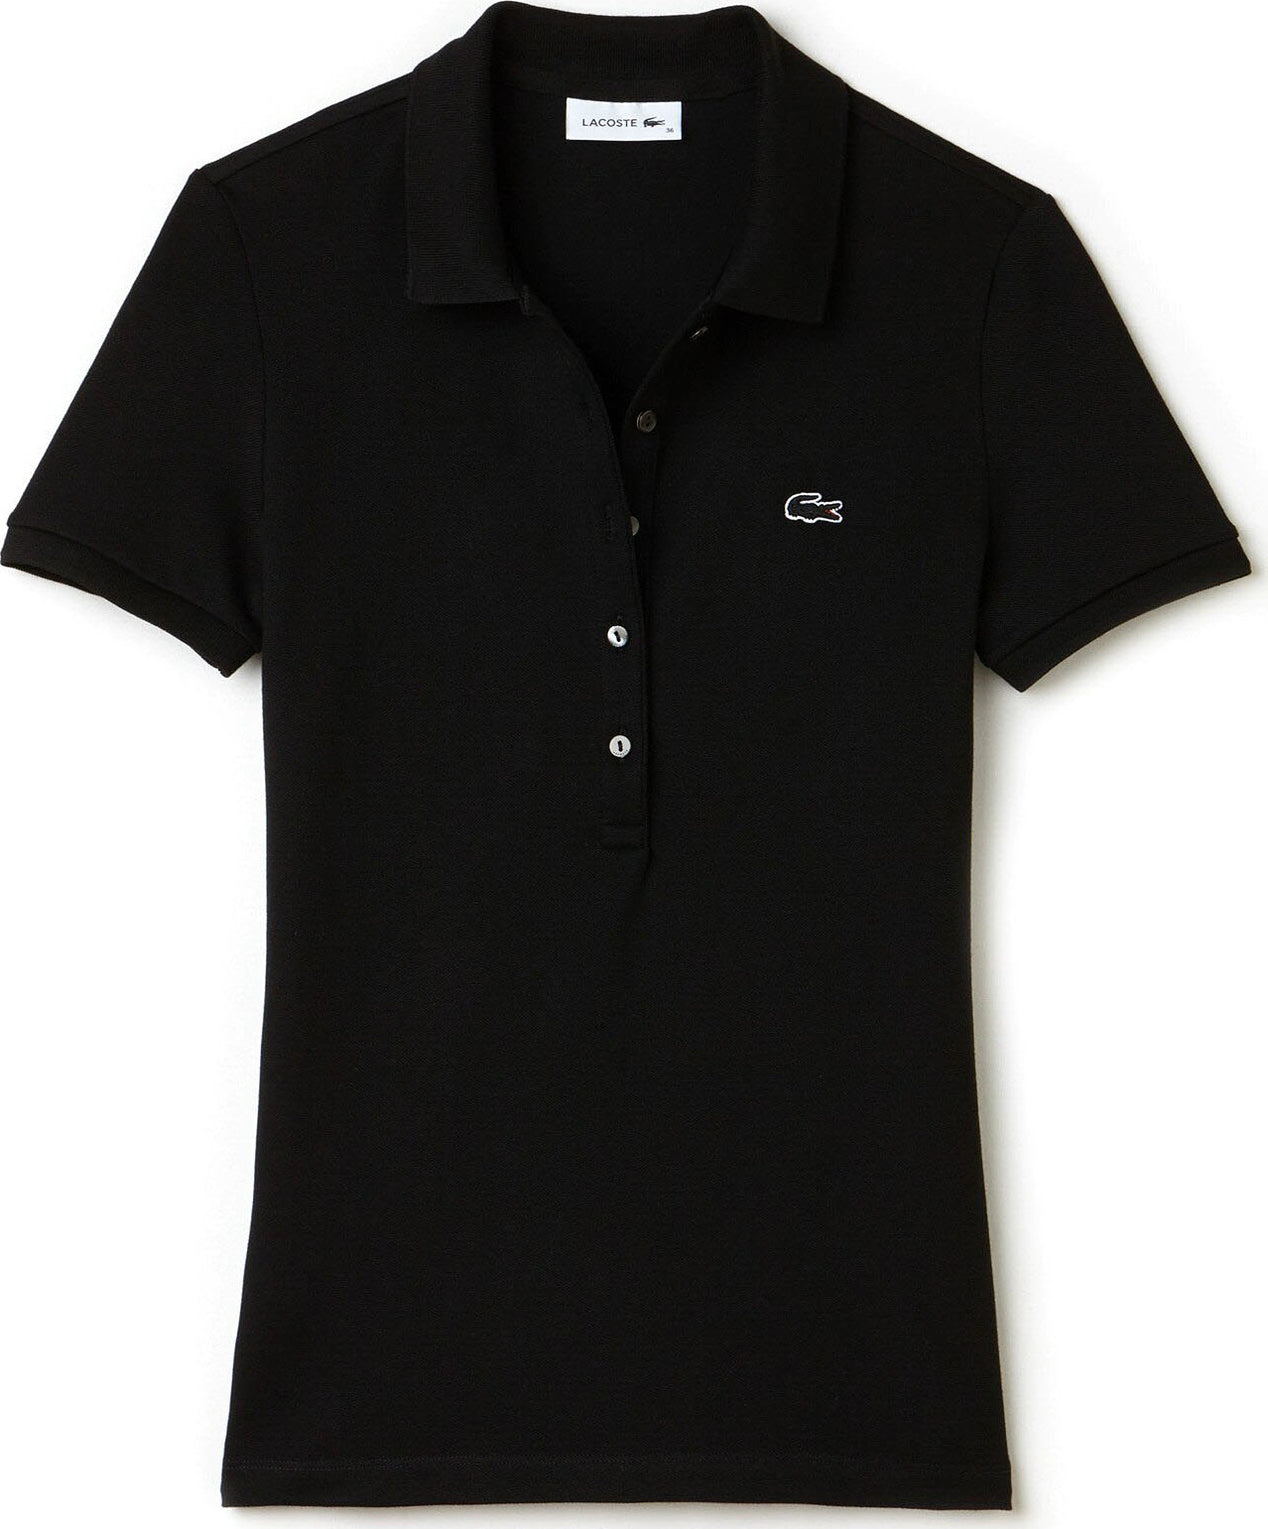 9d227f2f15 Lacoste Slim Fit Stretch Mini Cotton Piqué Polo - Women's | Altitude ...